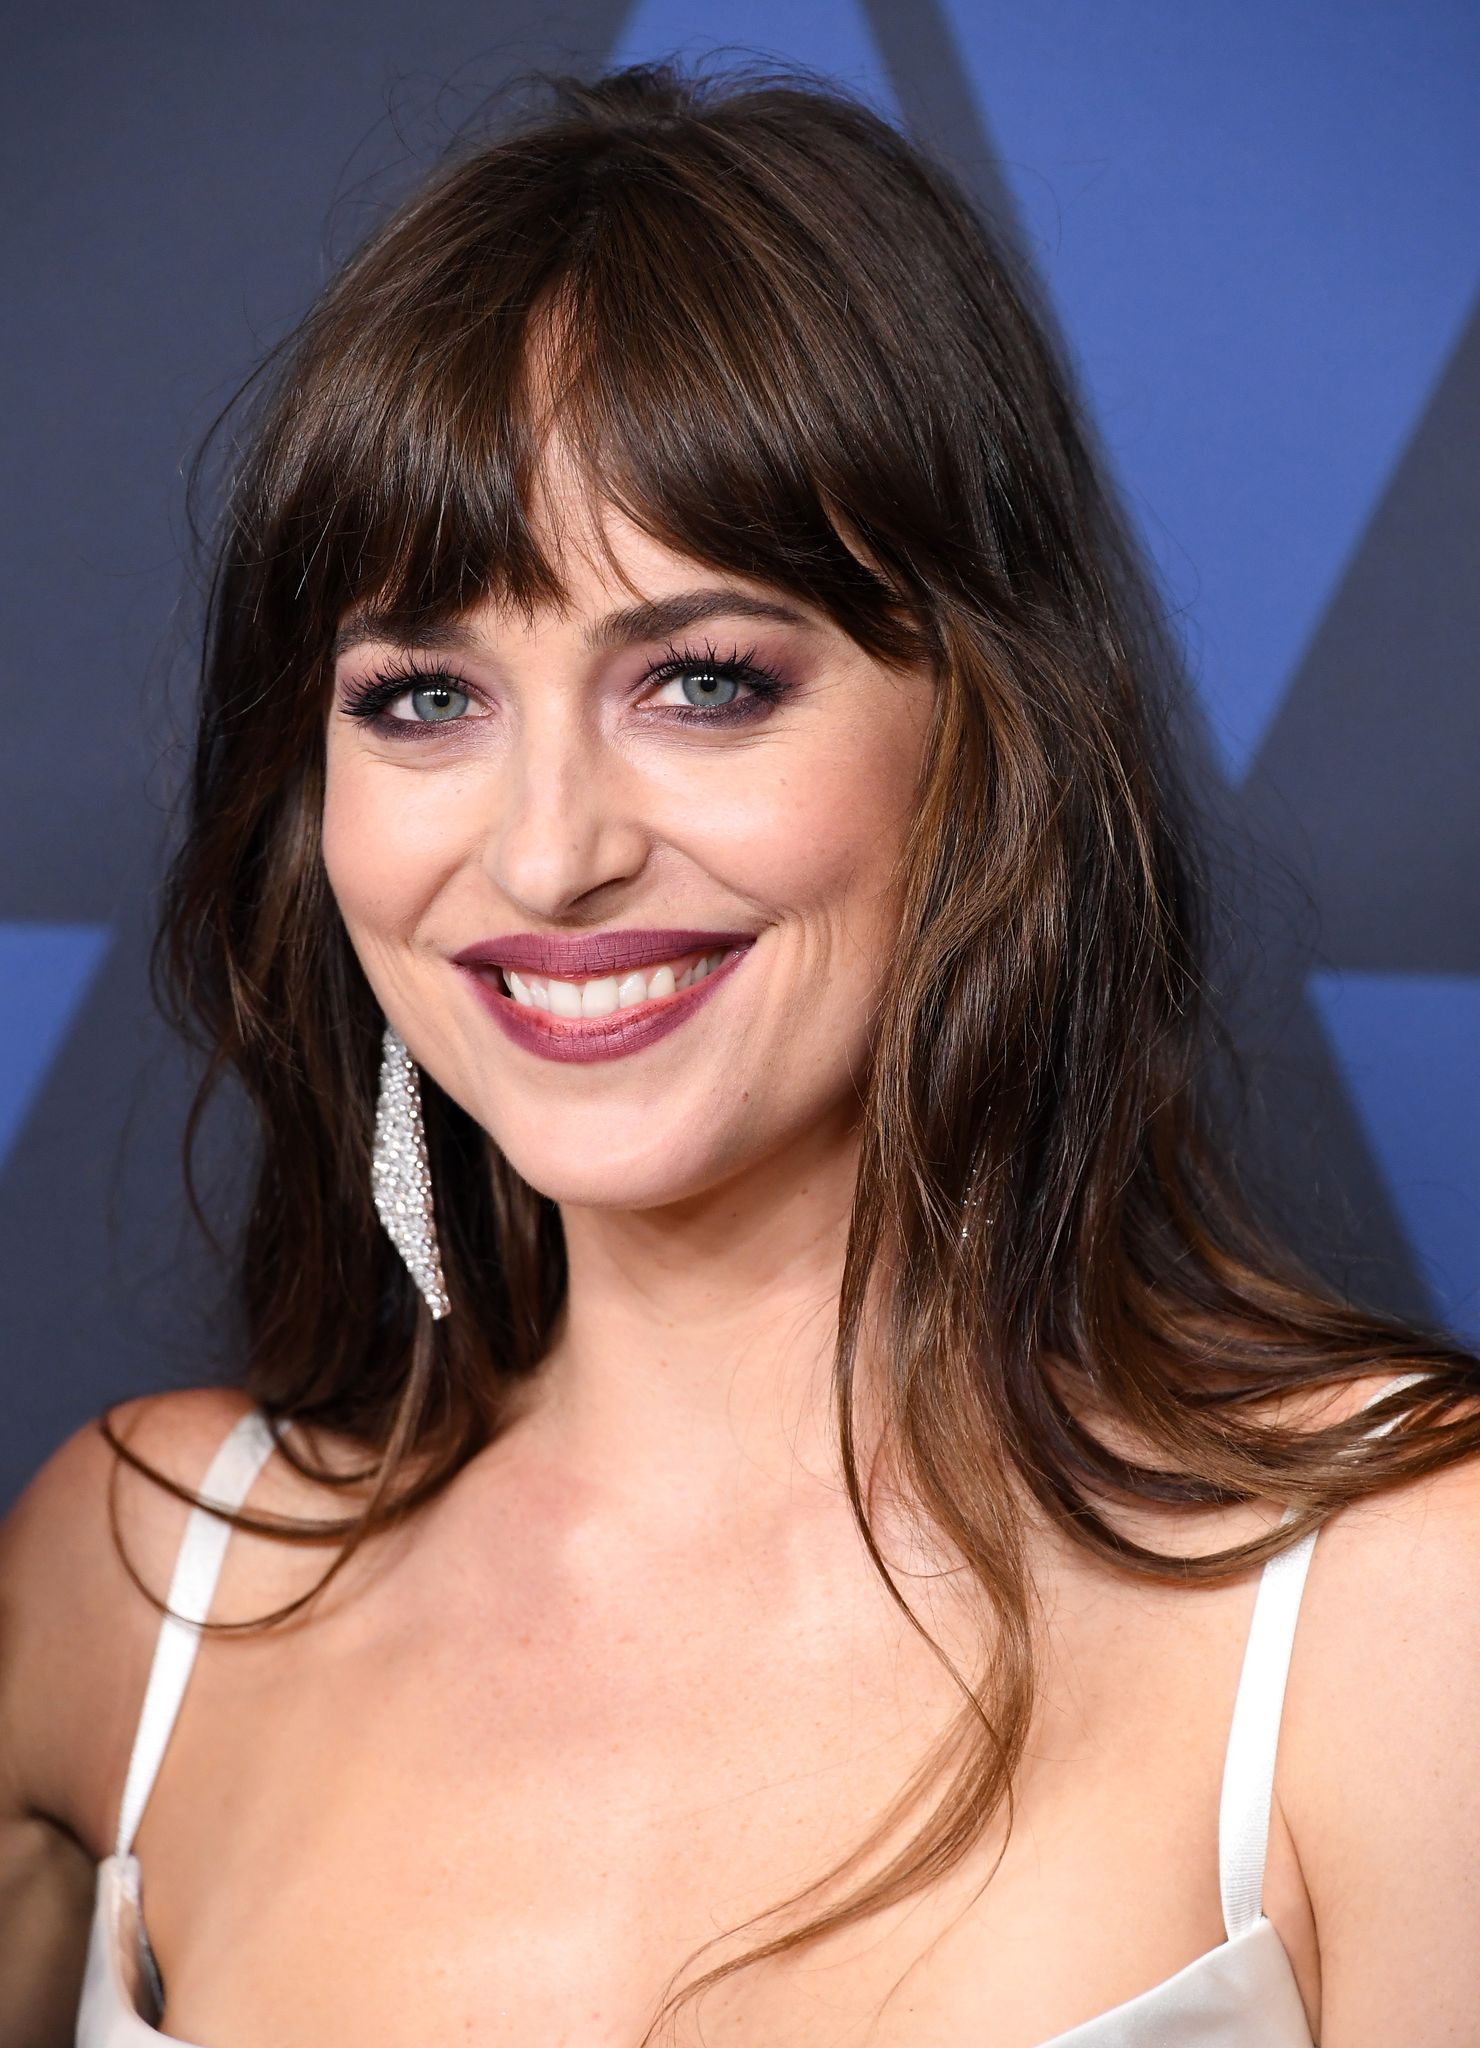 Dakota Johnson is Antonio Banderas's step-daughter / Getty Images